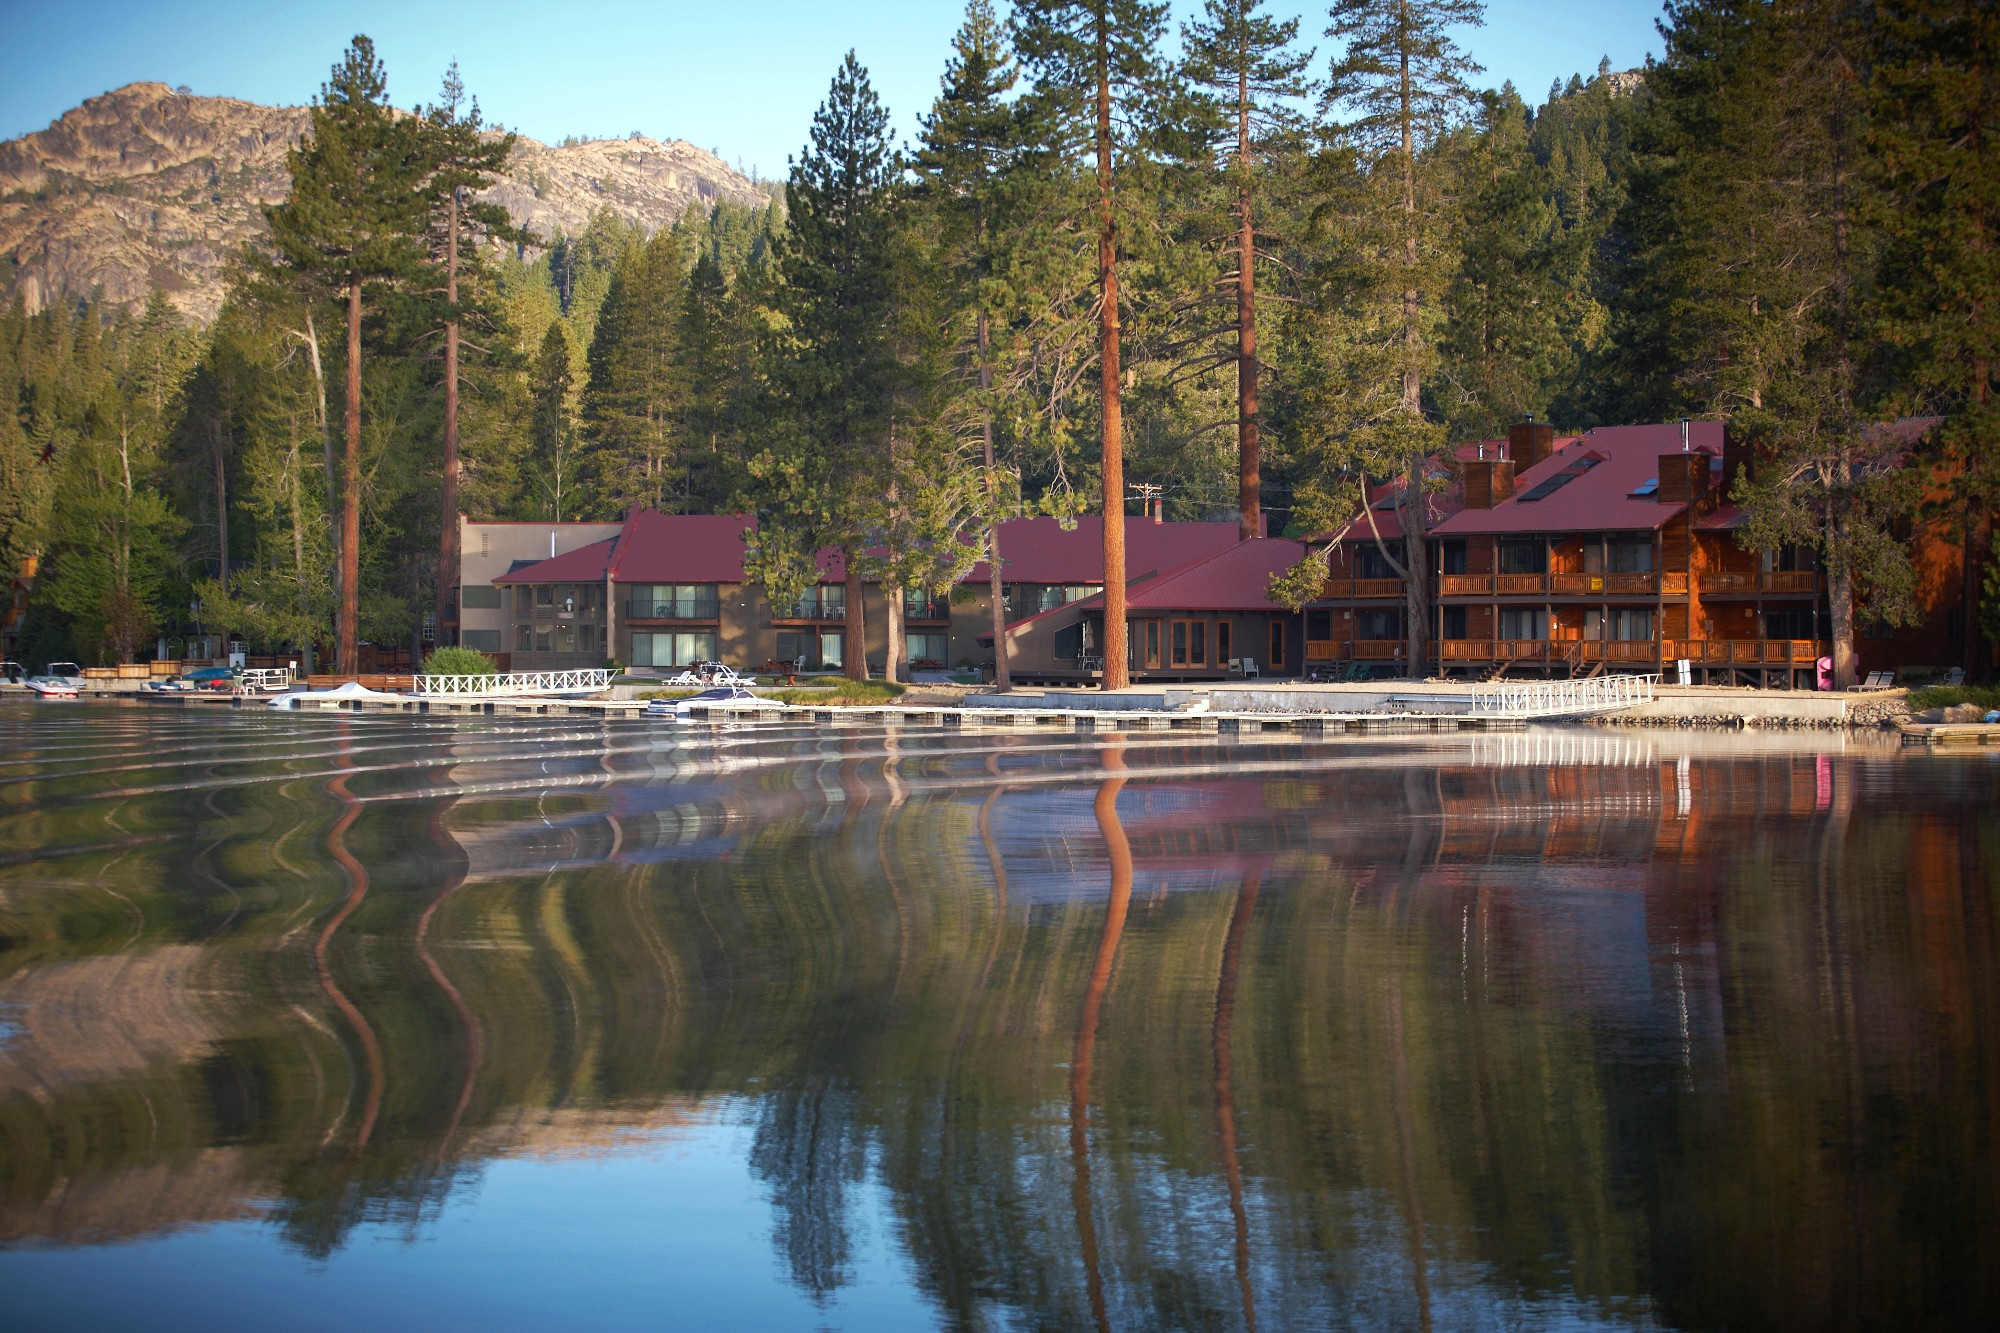 Donner Lake Village as seen from Donner Lake.